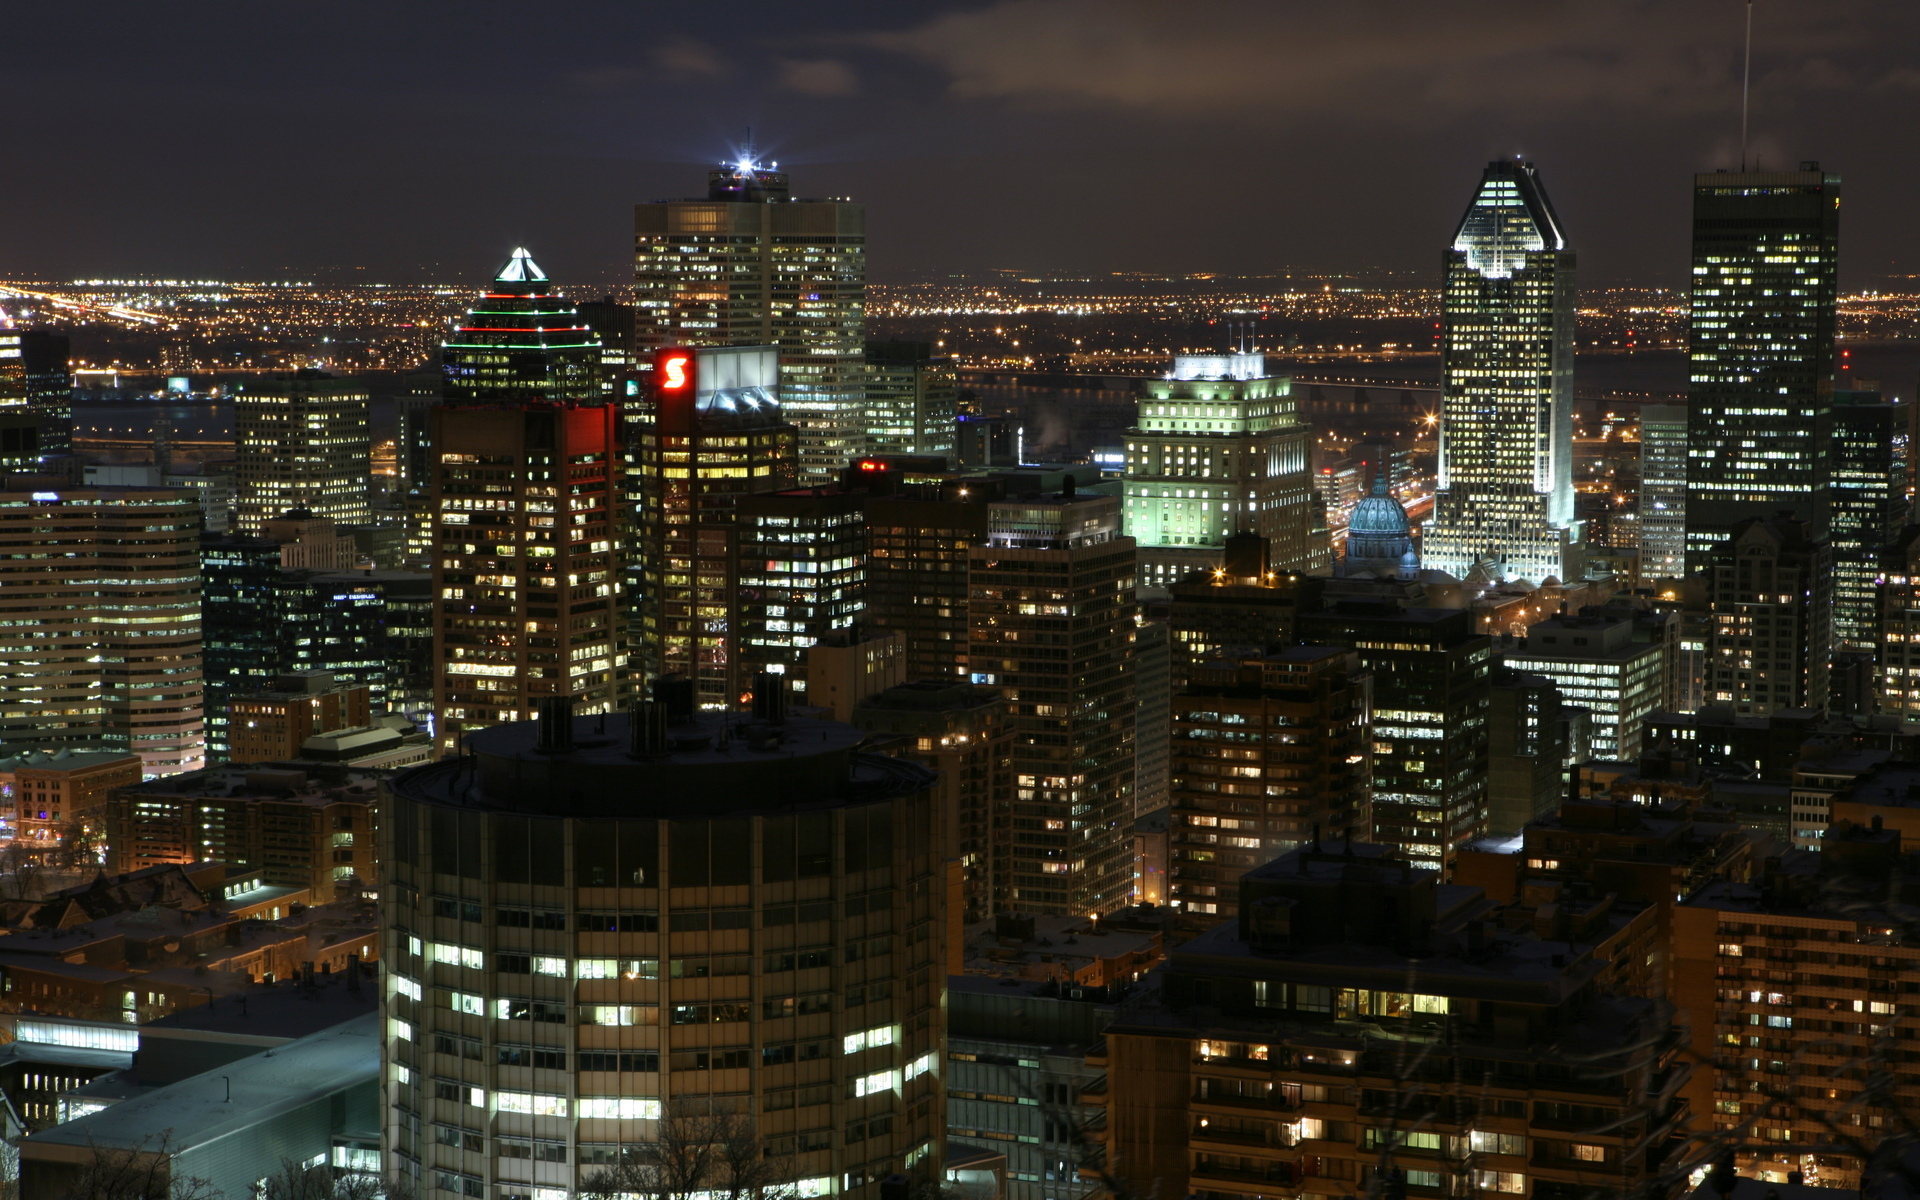 Iphone Wallpaper Pinterest Centre Ville De Montreal Full Hd Wallpaper And Background